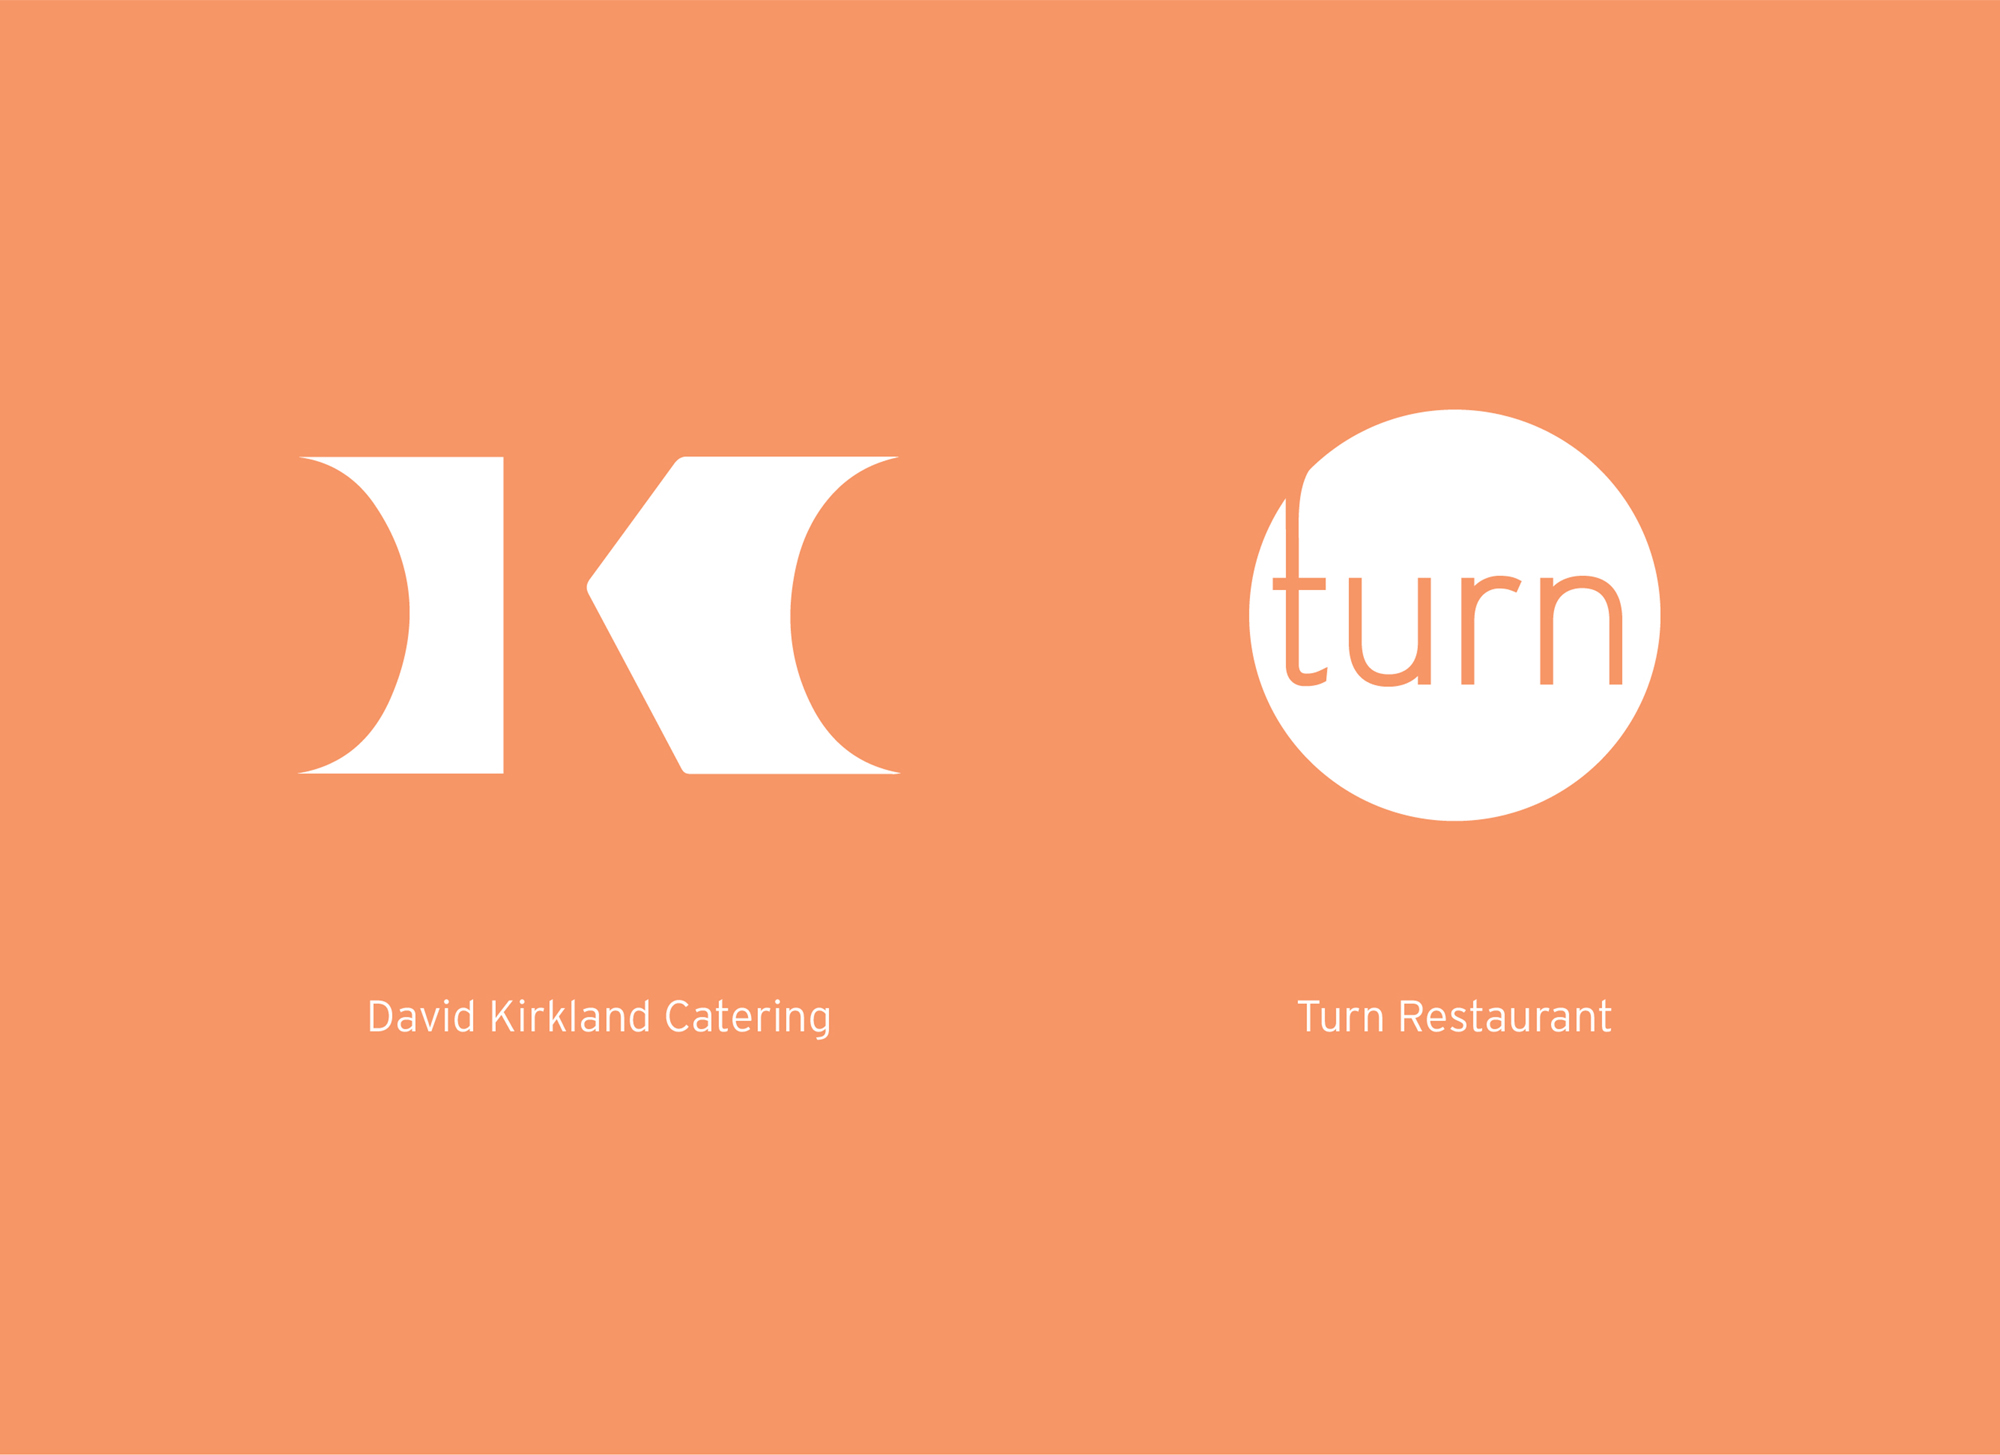 Studiopowell and Turn Restaurant and David Kirkland Catering branding and creative direction